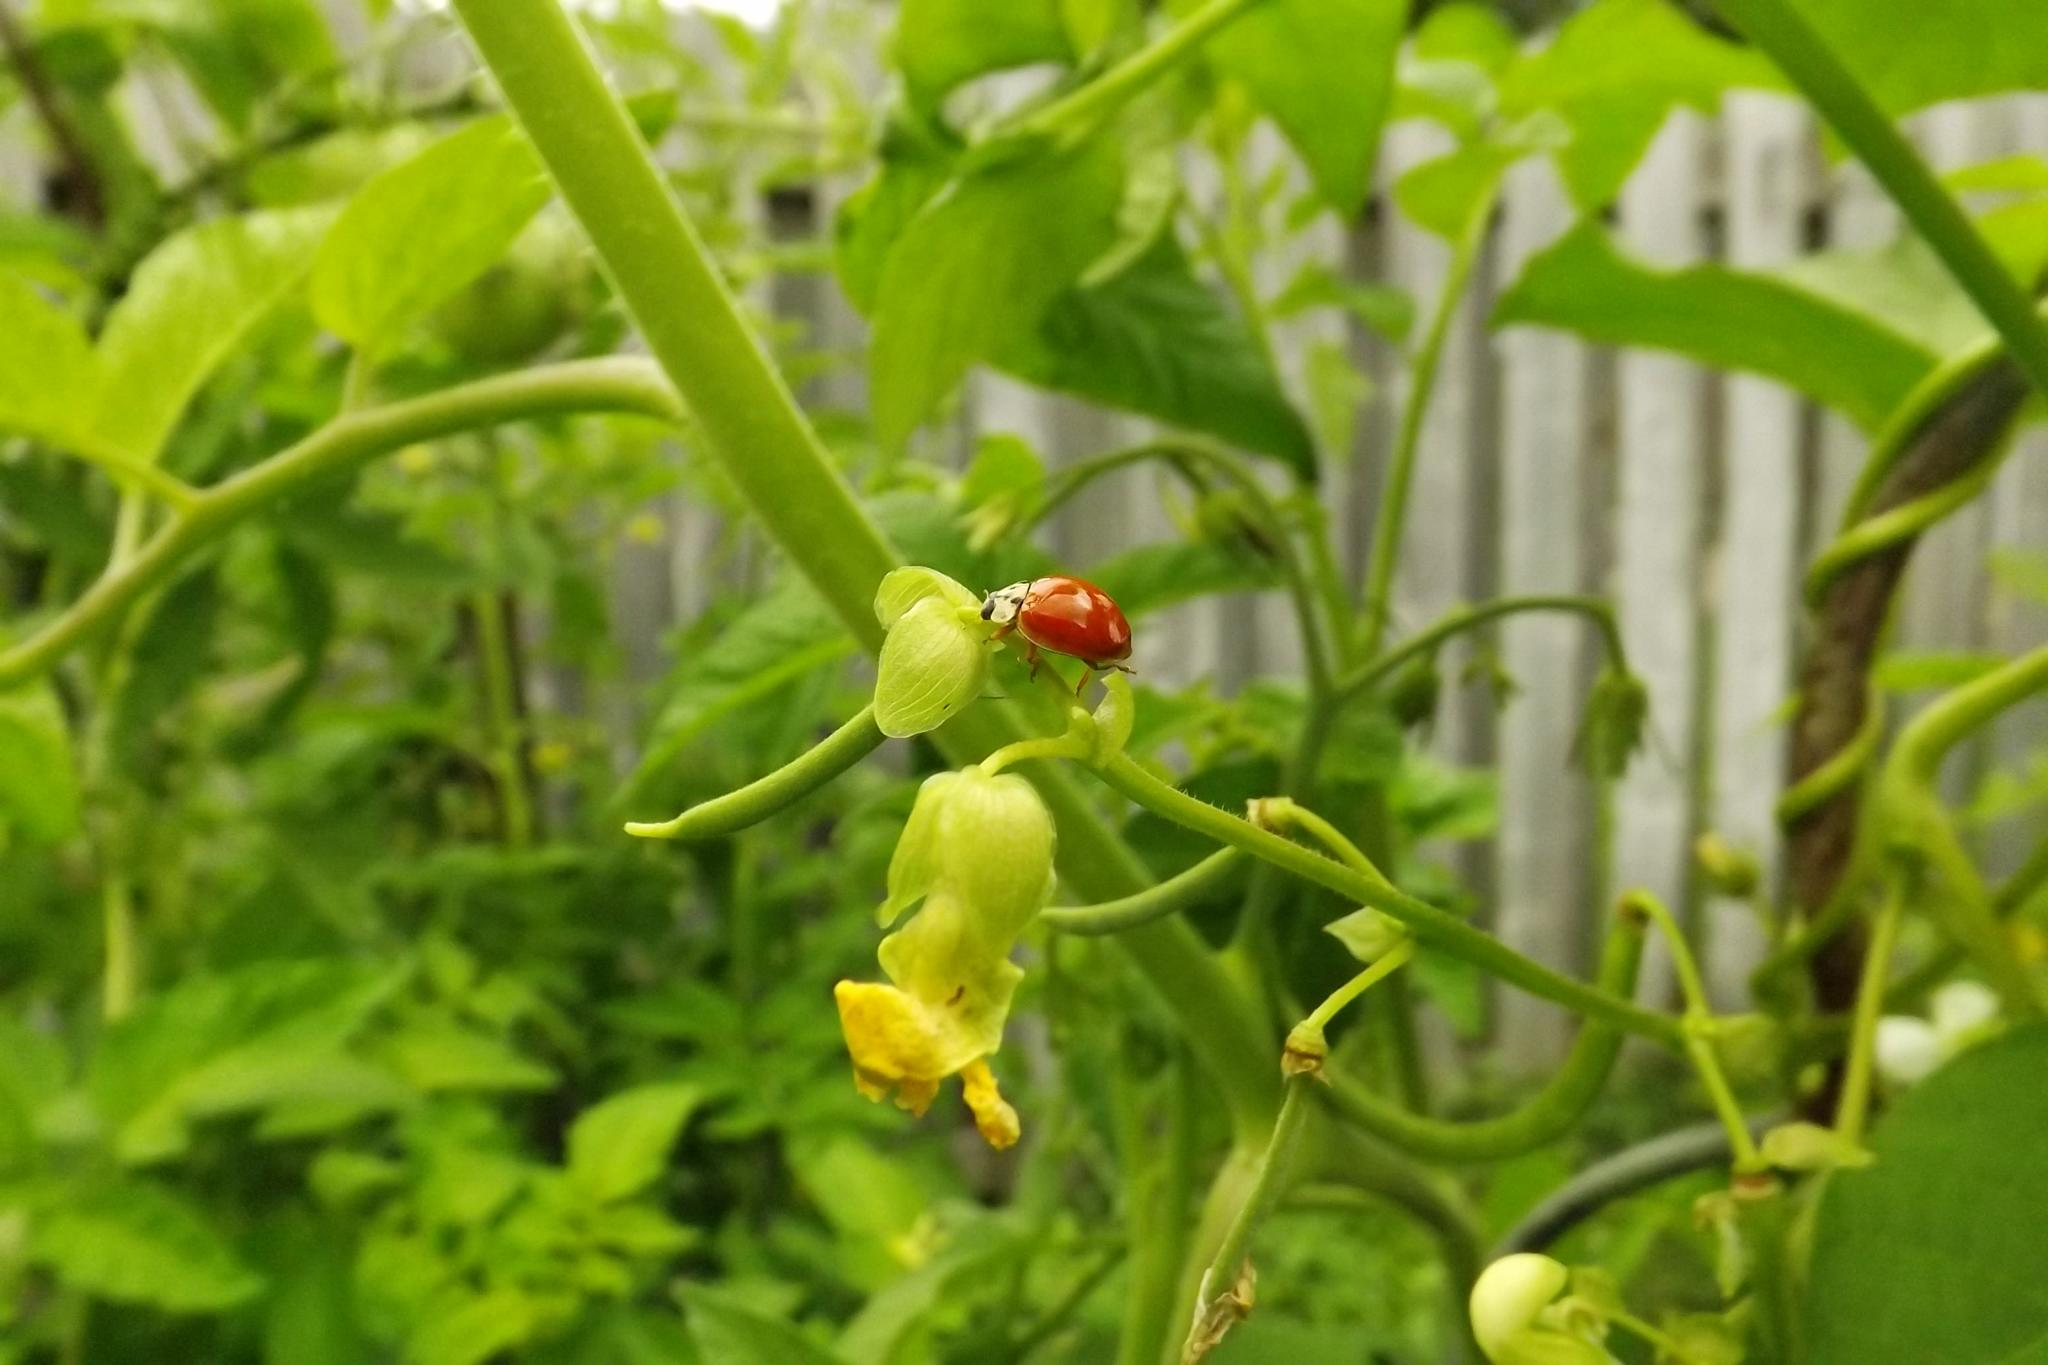 Ladybug on bean vine. by Chewy Momma